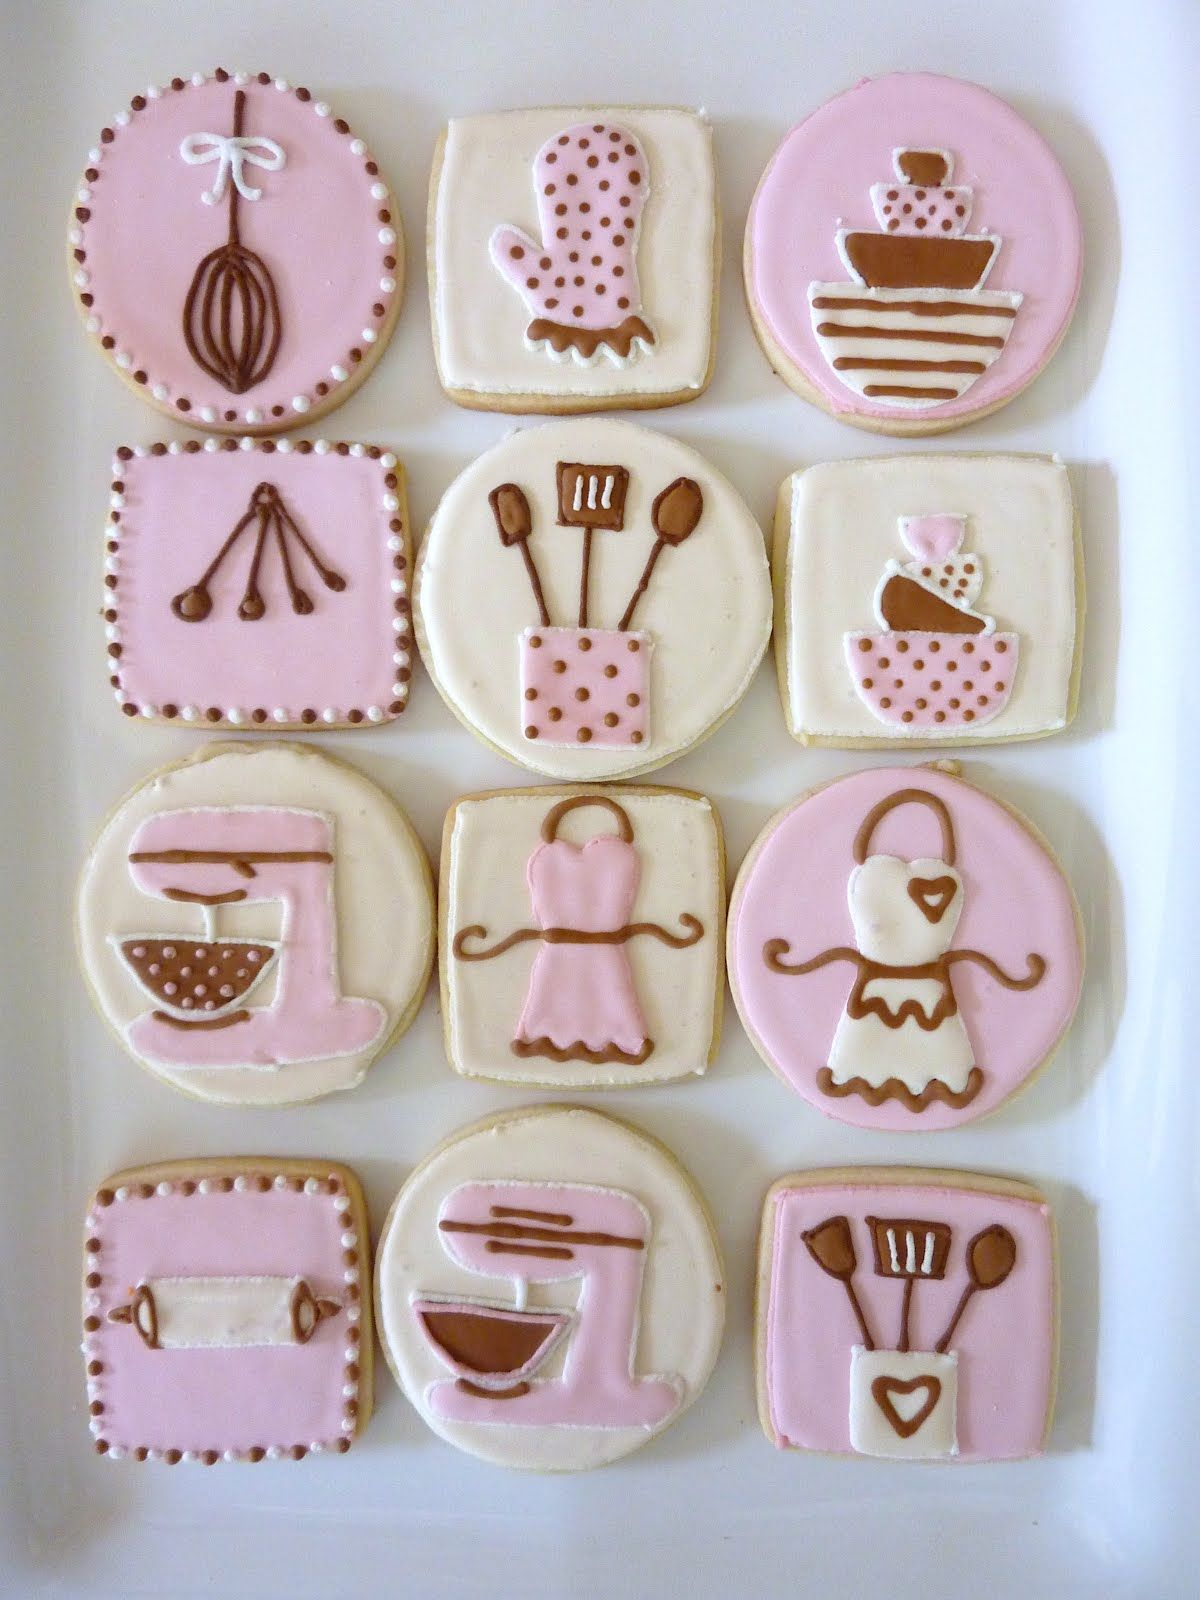 Kitchen Themed Bridal Shower Cooking Themed Cookies Cooking Party Pinterest Cooking